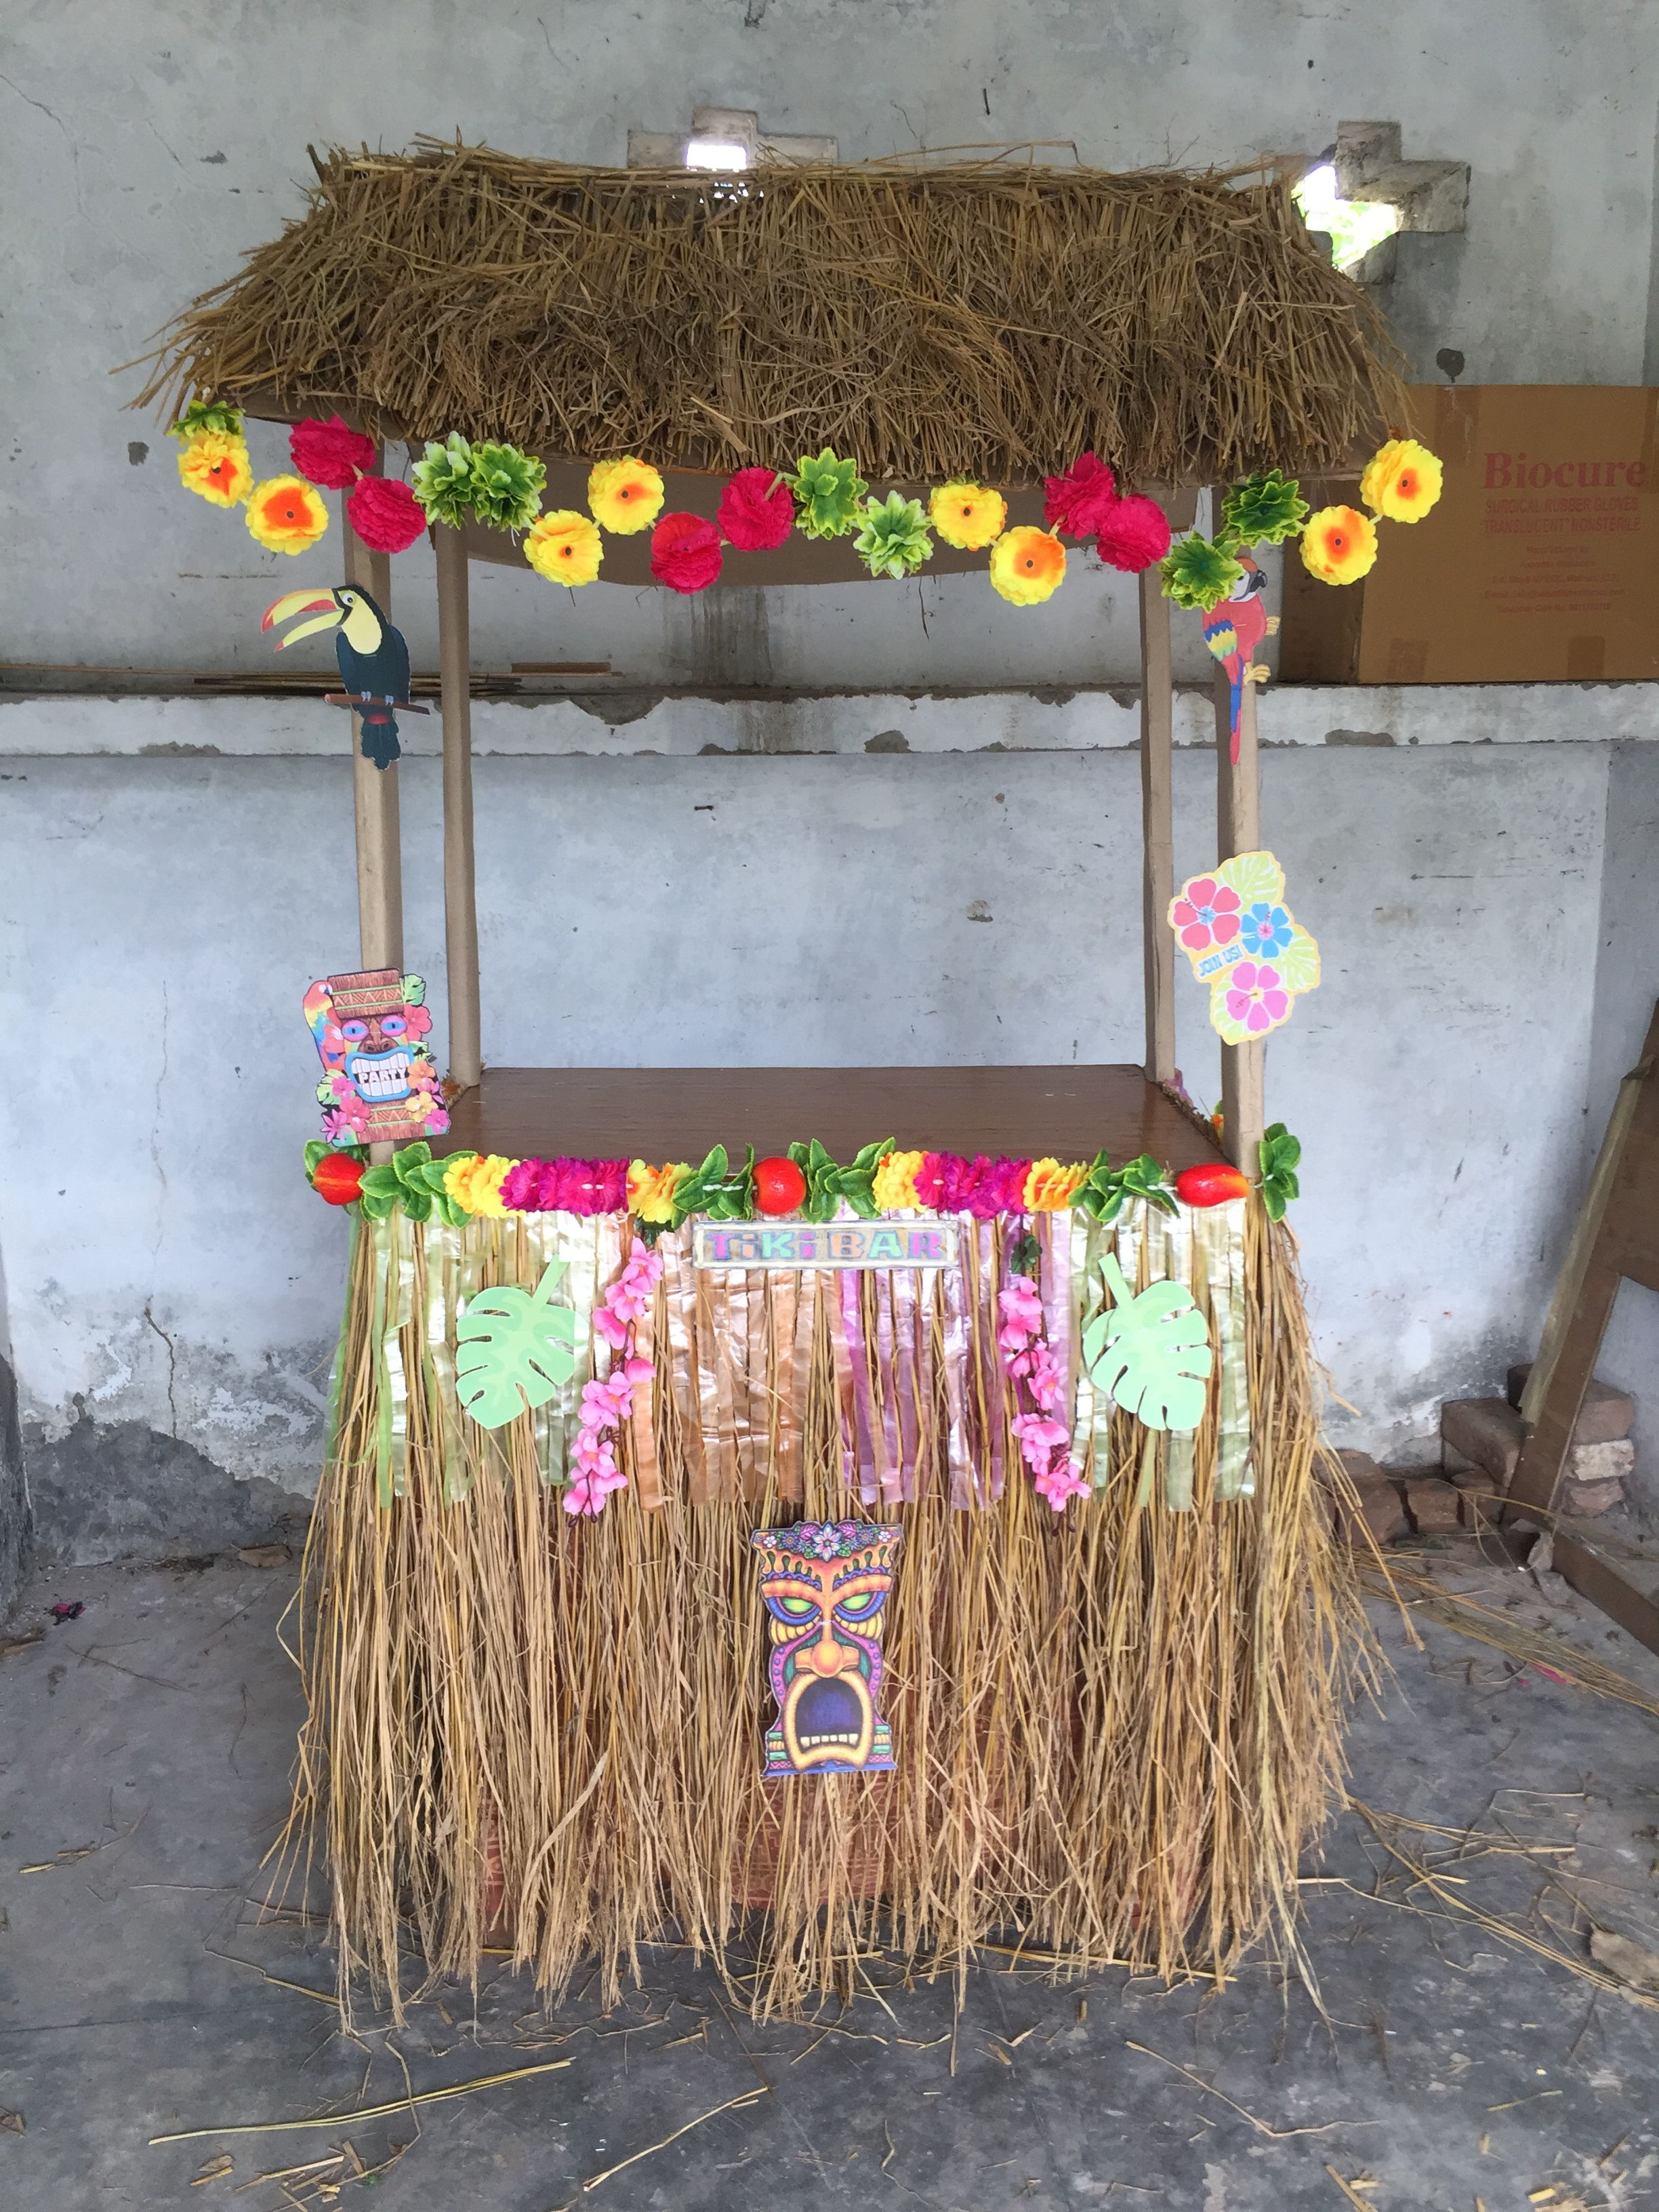 My diy tiki bar for Hawaii party | Luau theme party ...